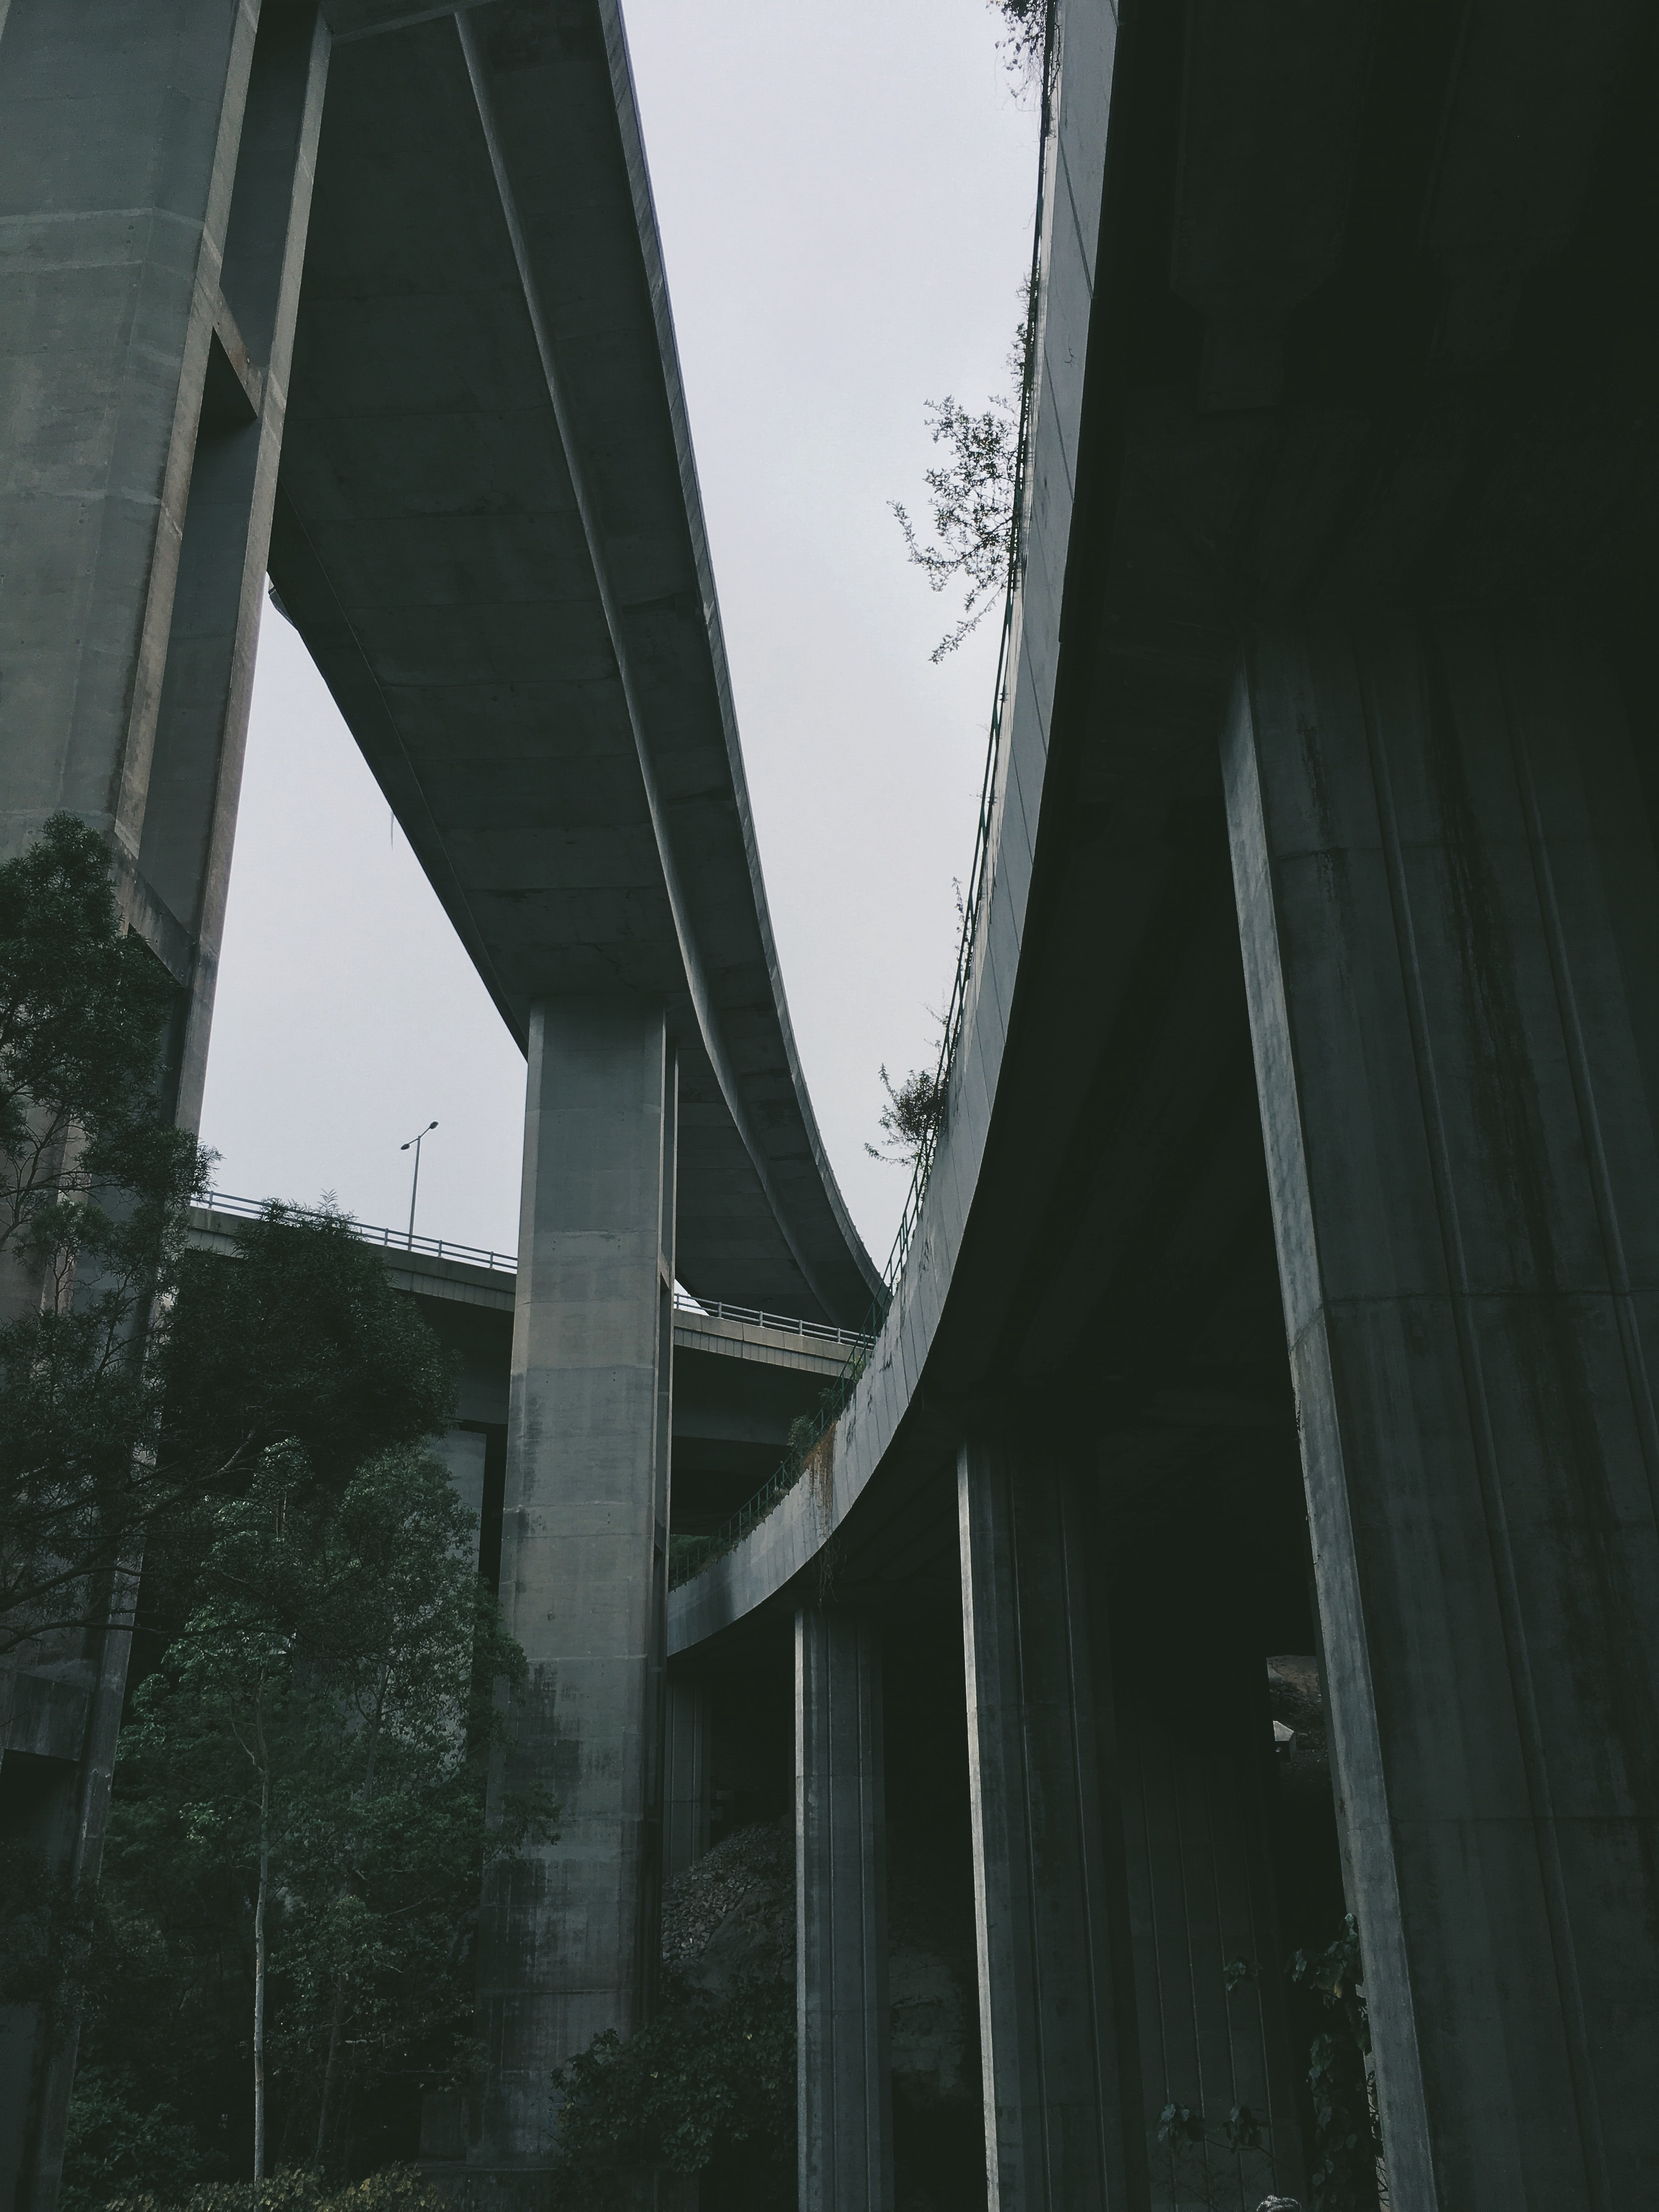 grey scale and low angle photography of grey concrete bridge